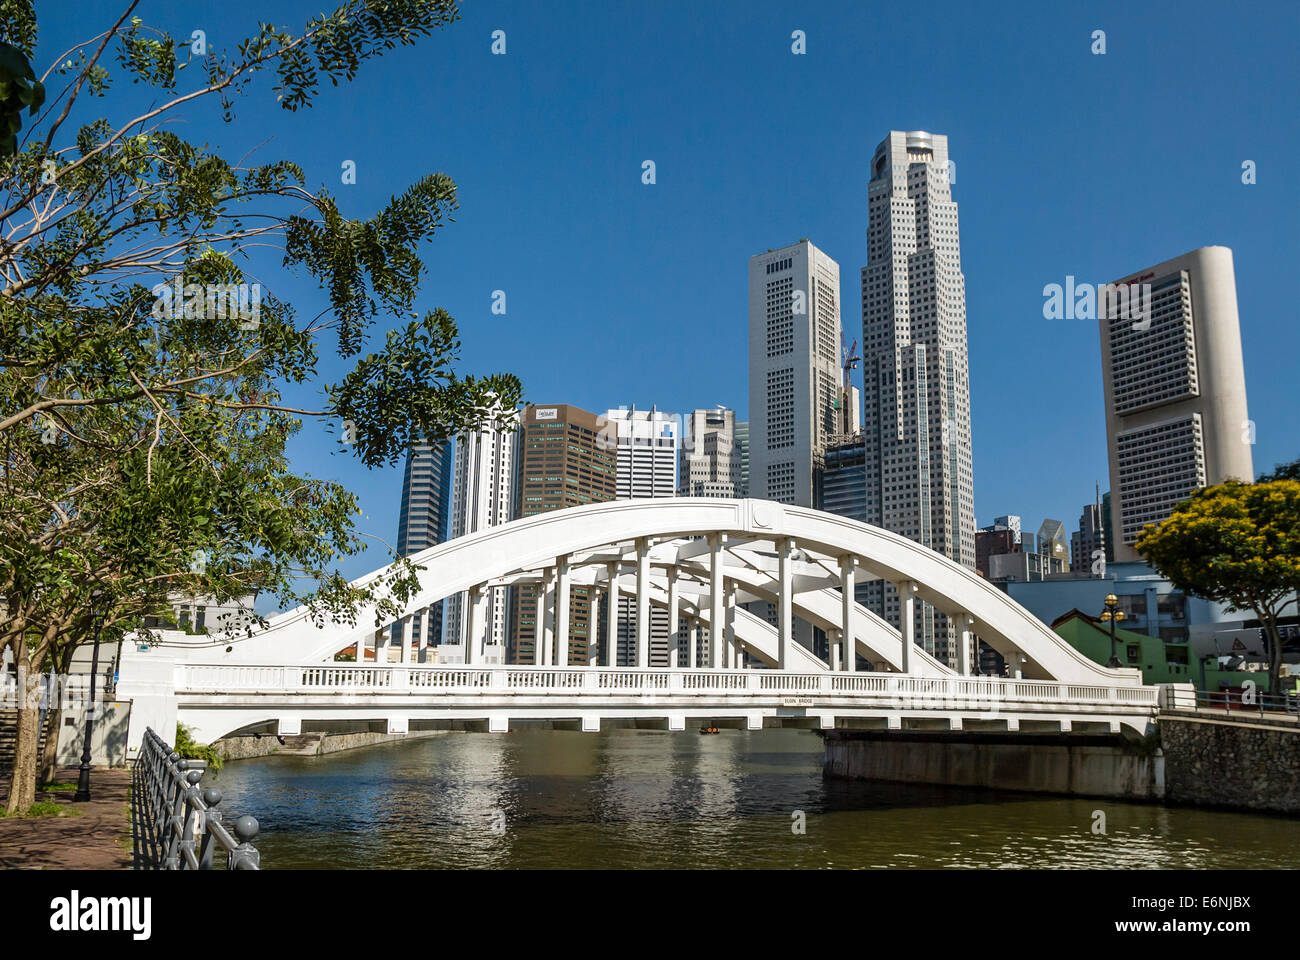 Elgin Bridge is a vehicular bridge across the Singapore River in downtown Singapore, with the skyline in the background. - Stock Image